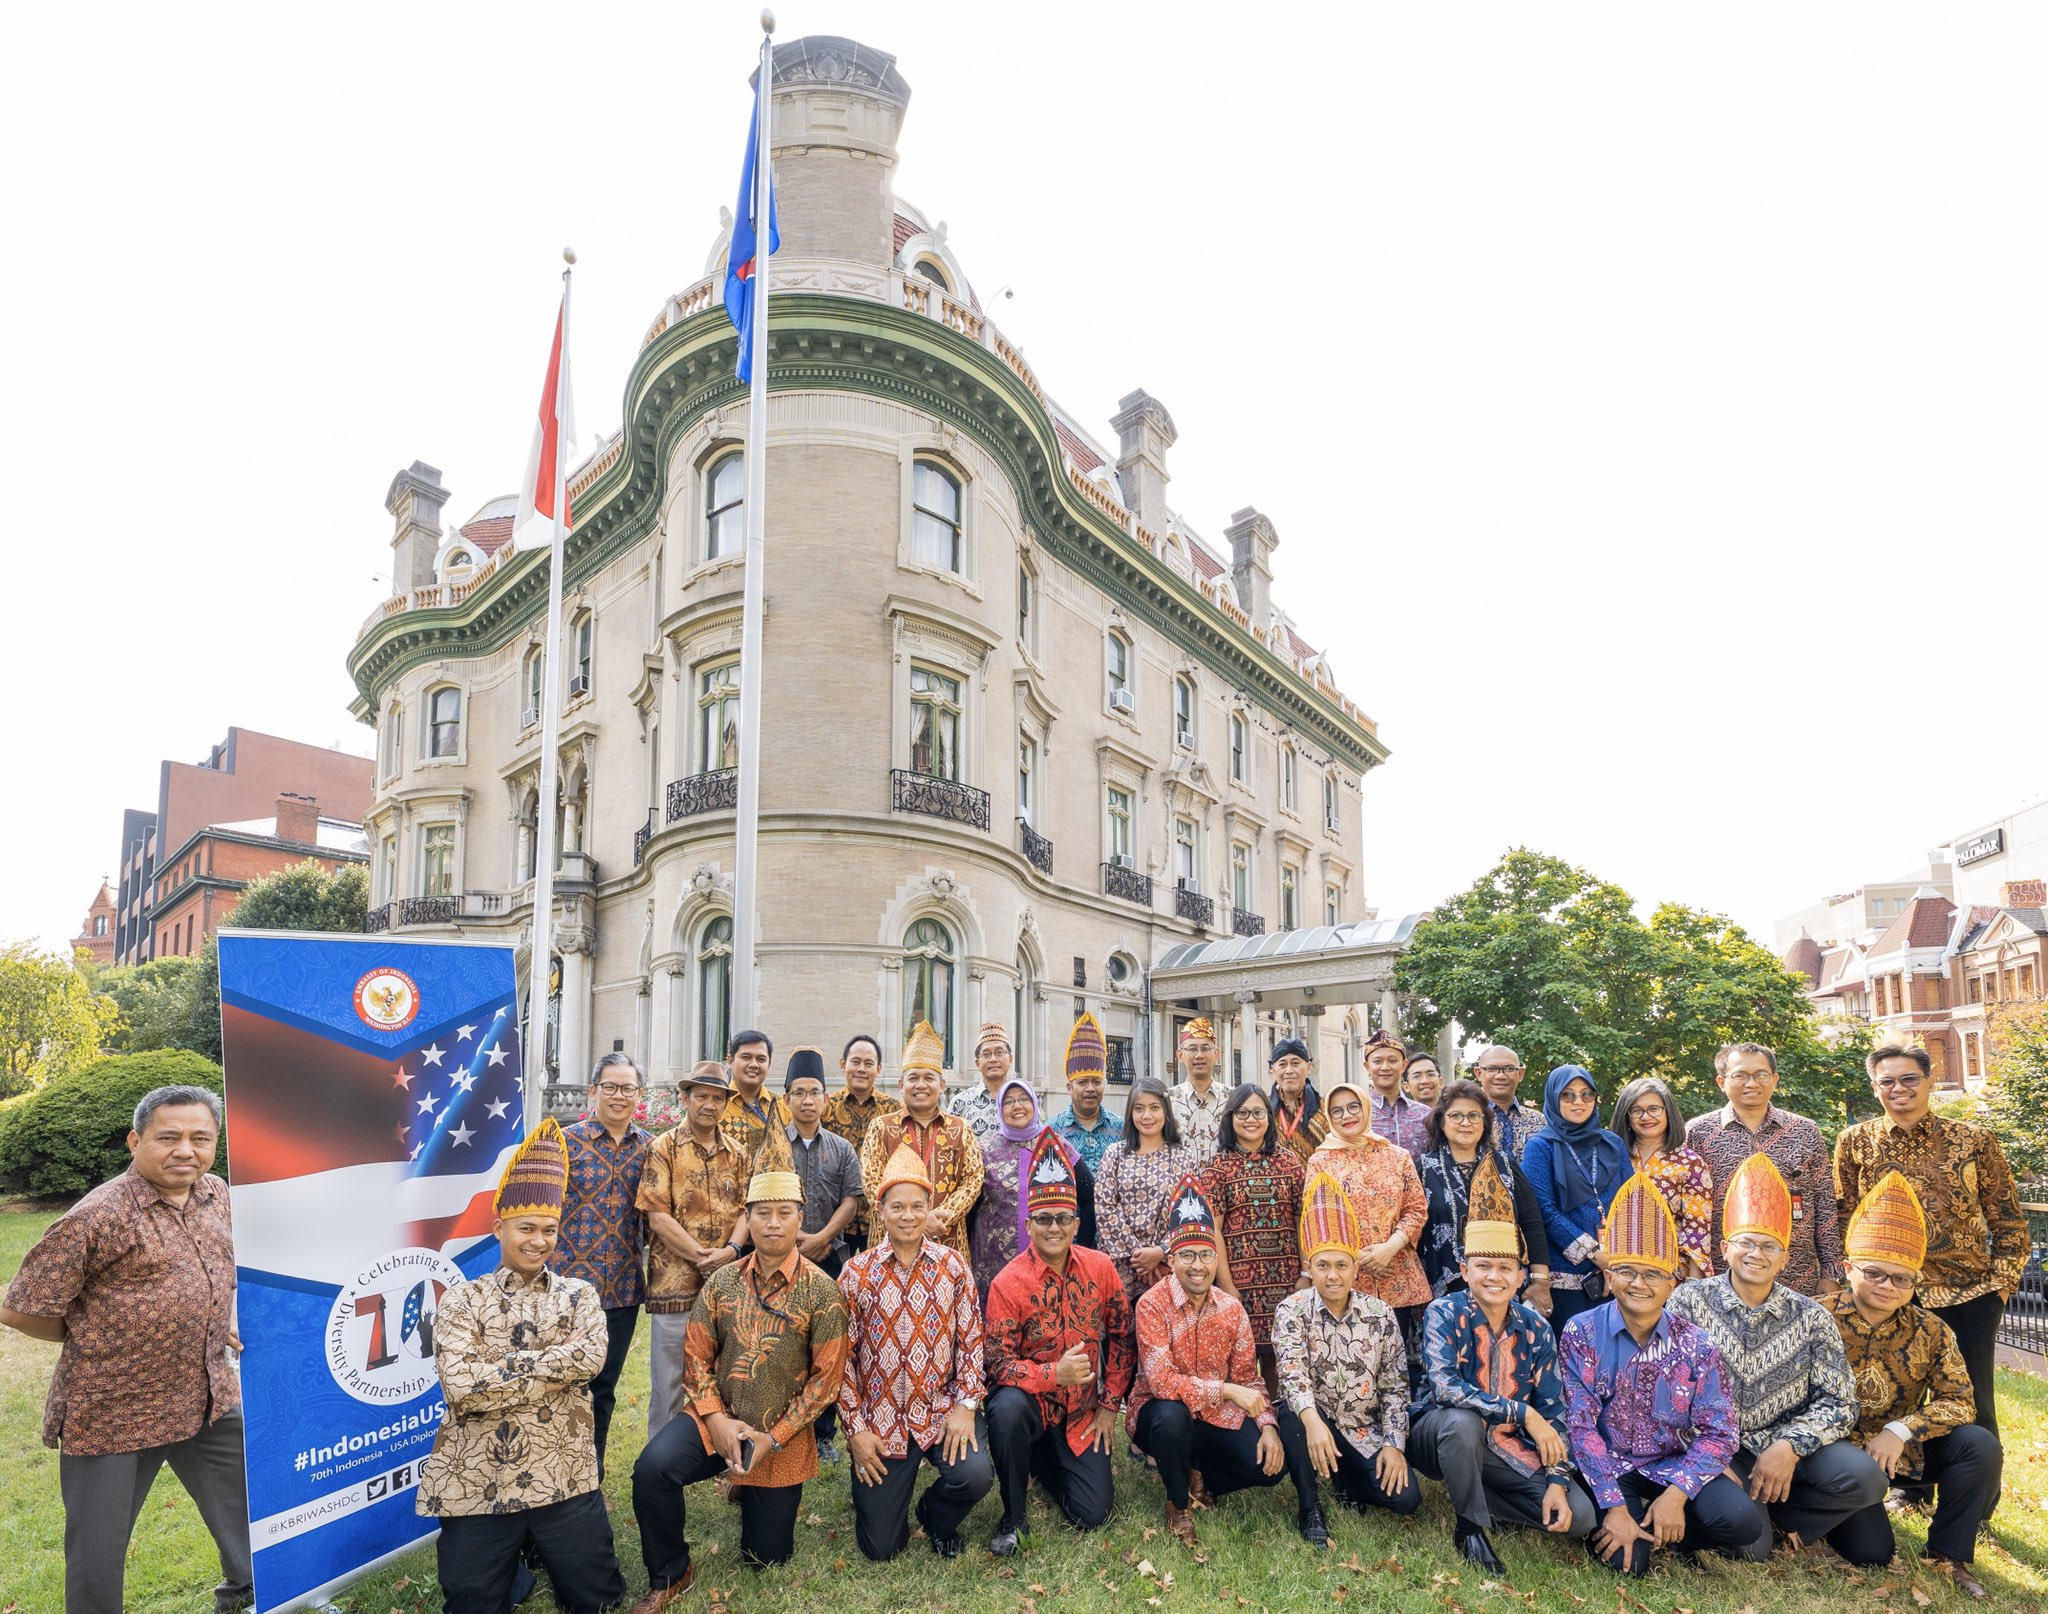 Indonesian Embassy In Washington Dc Usa On Twitter Tag Kbriwashdc On Twitter Facebook Instagram Your Photo How Excited You Are In Celebrating Batikday With Batikday2019 If You Re In Dc Area Curious